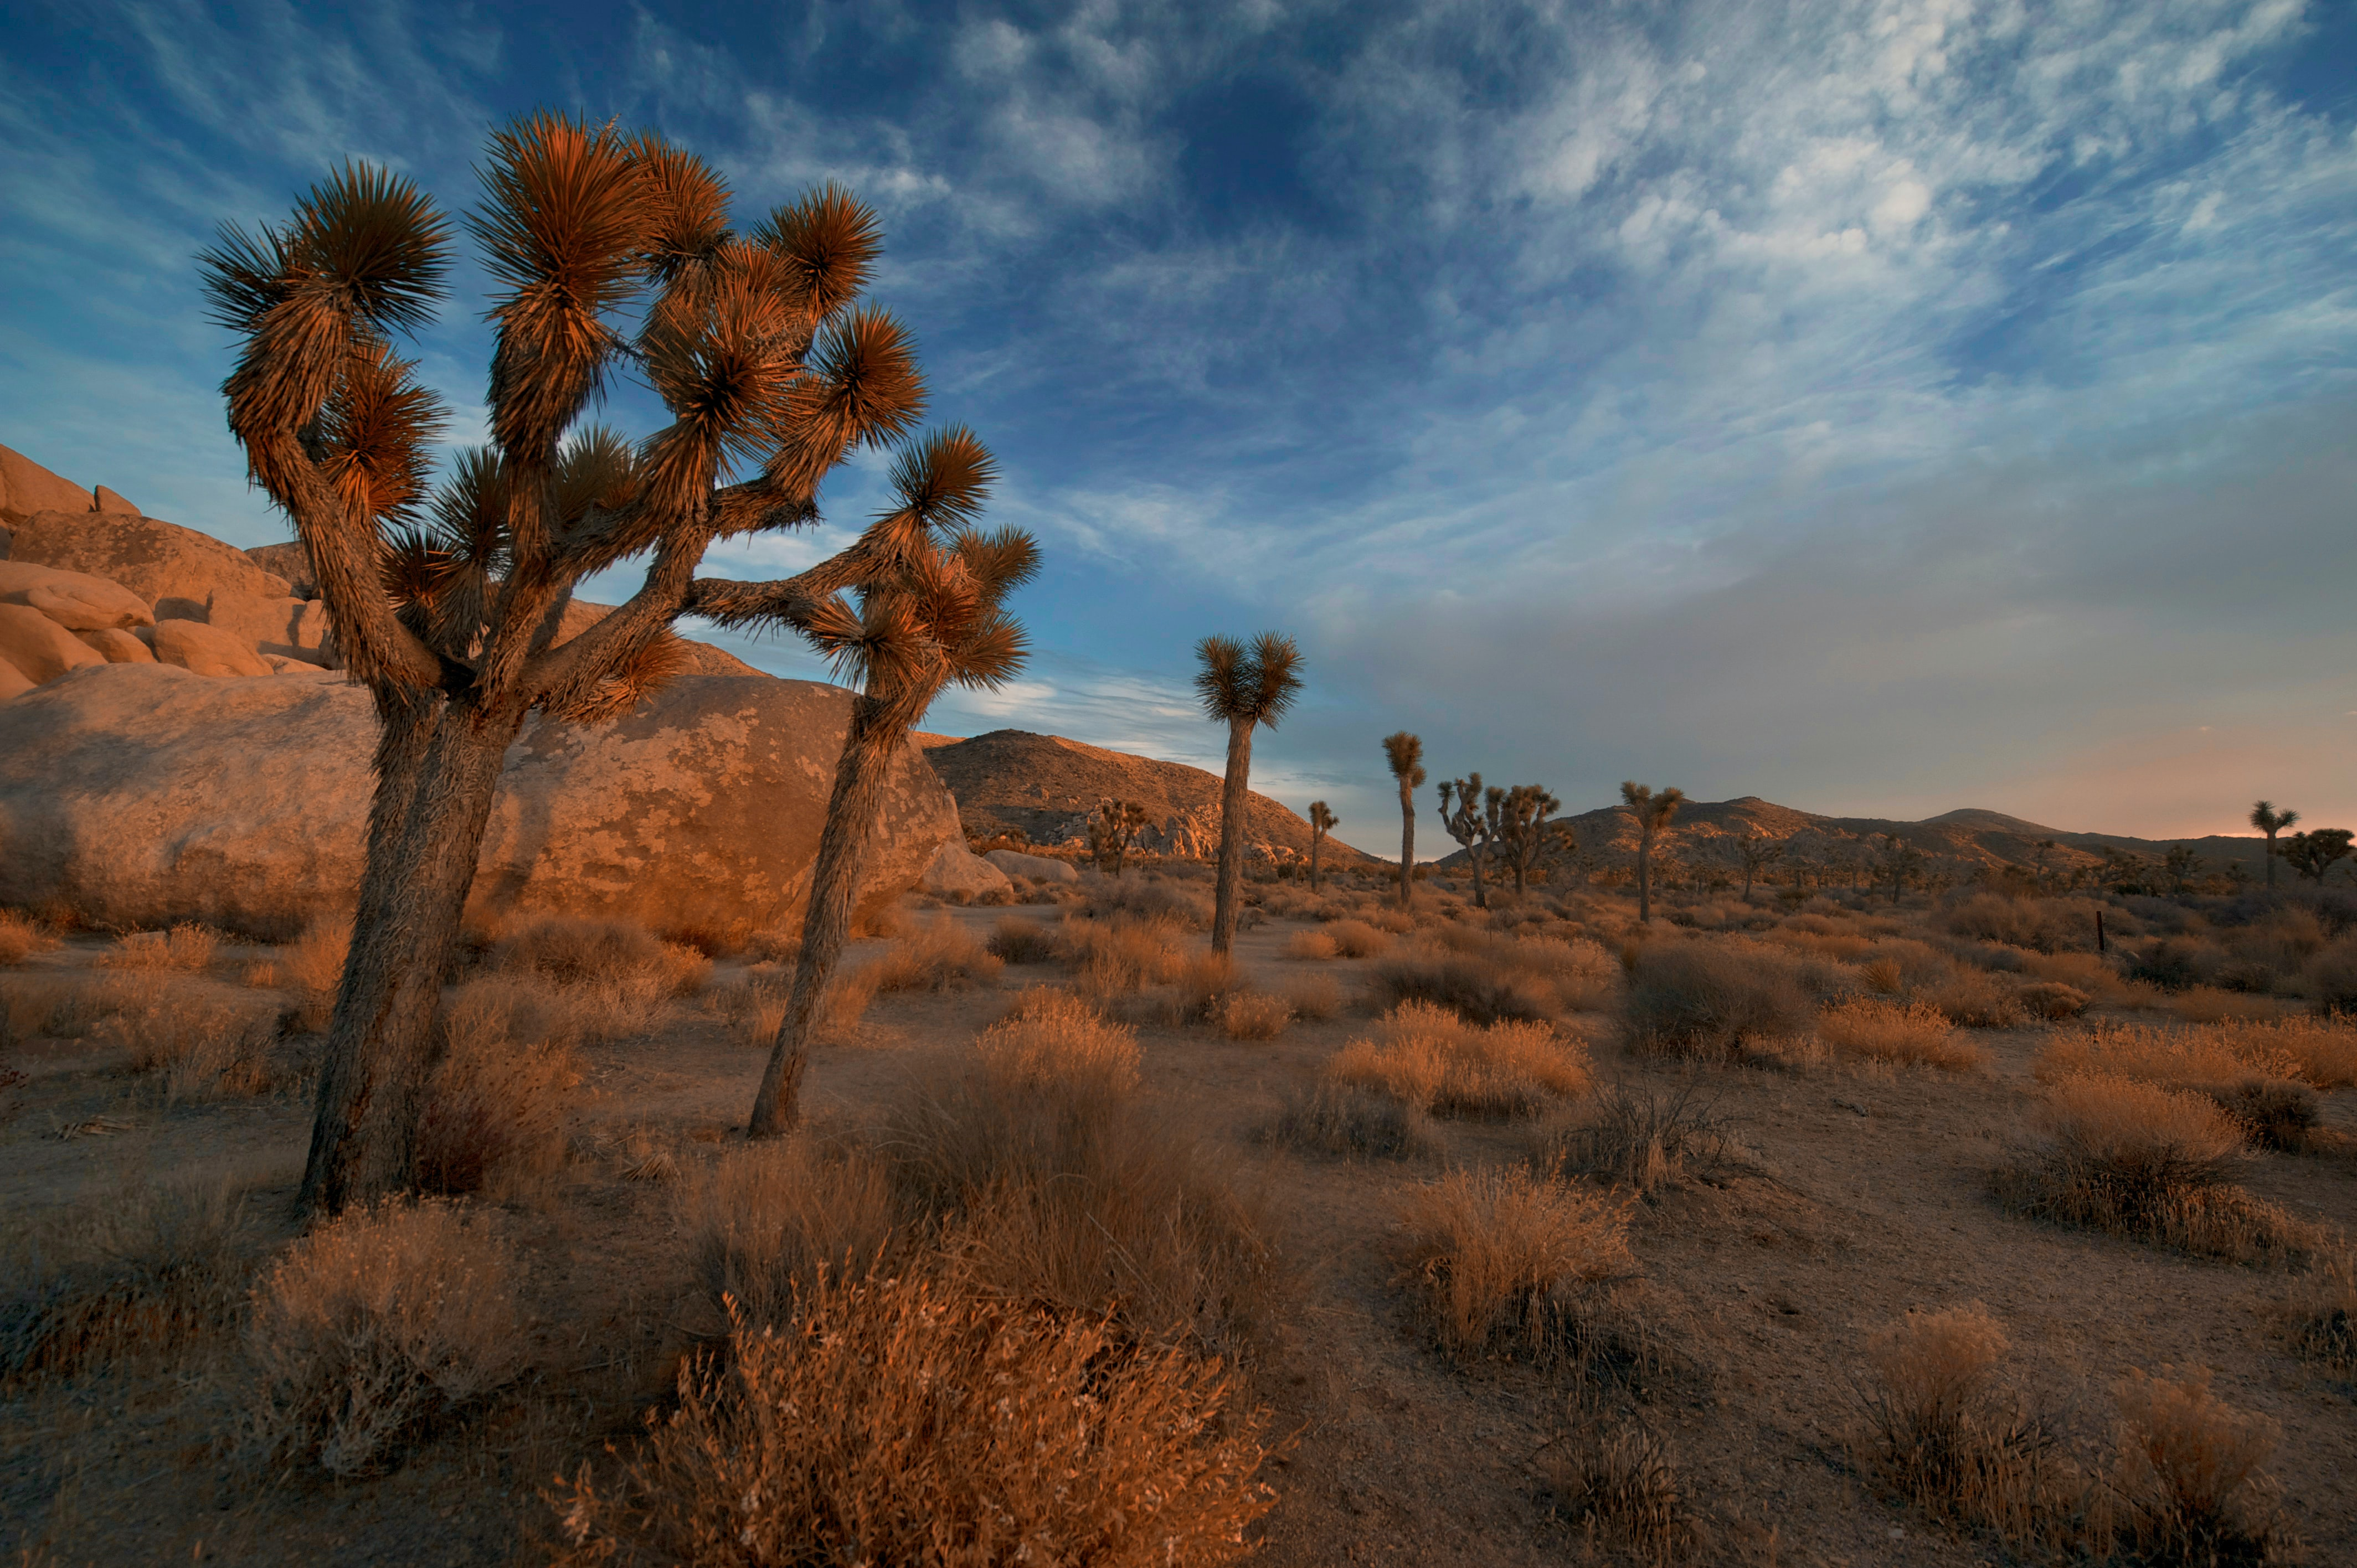 A mix of tumbleweed and cacti in Joshua Trees during sunset